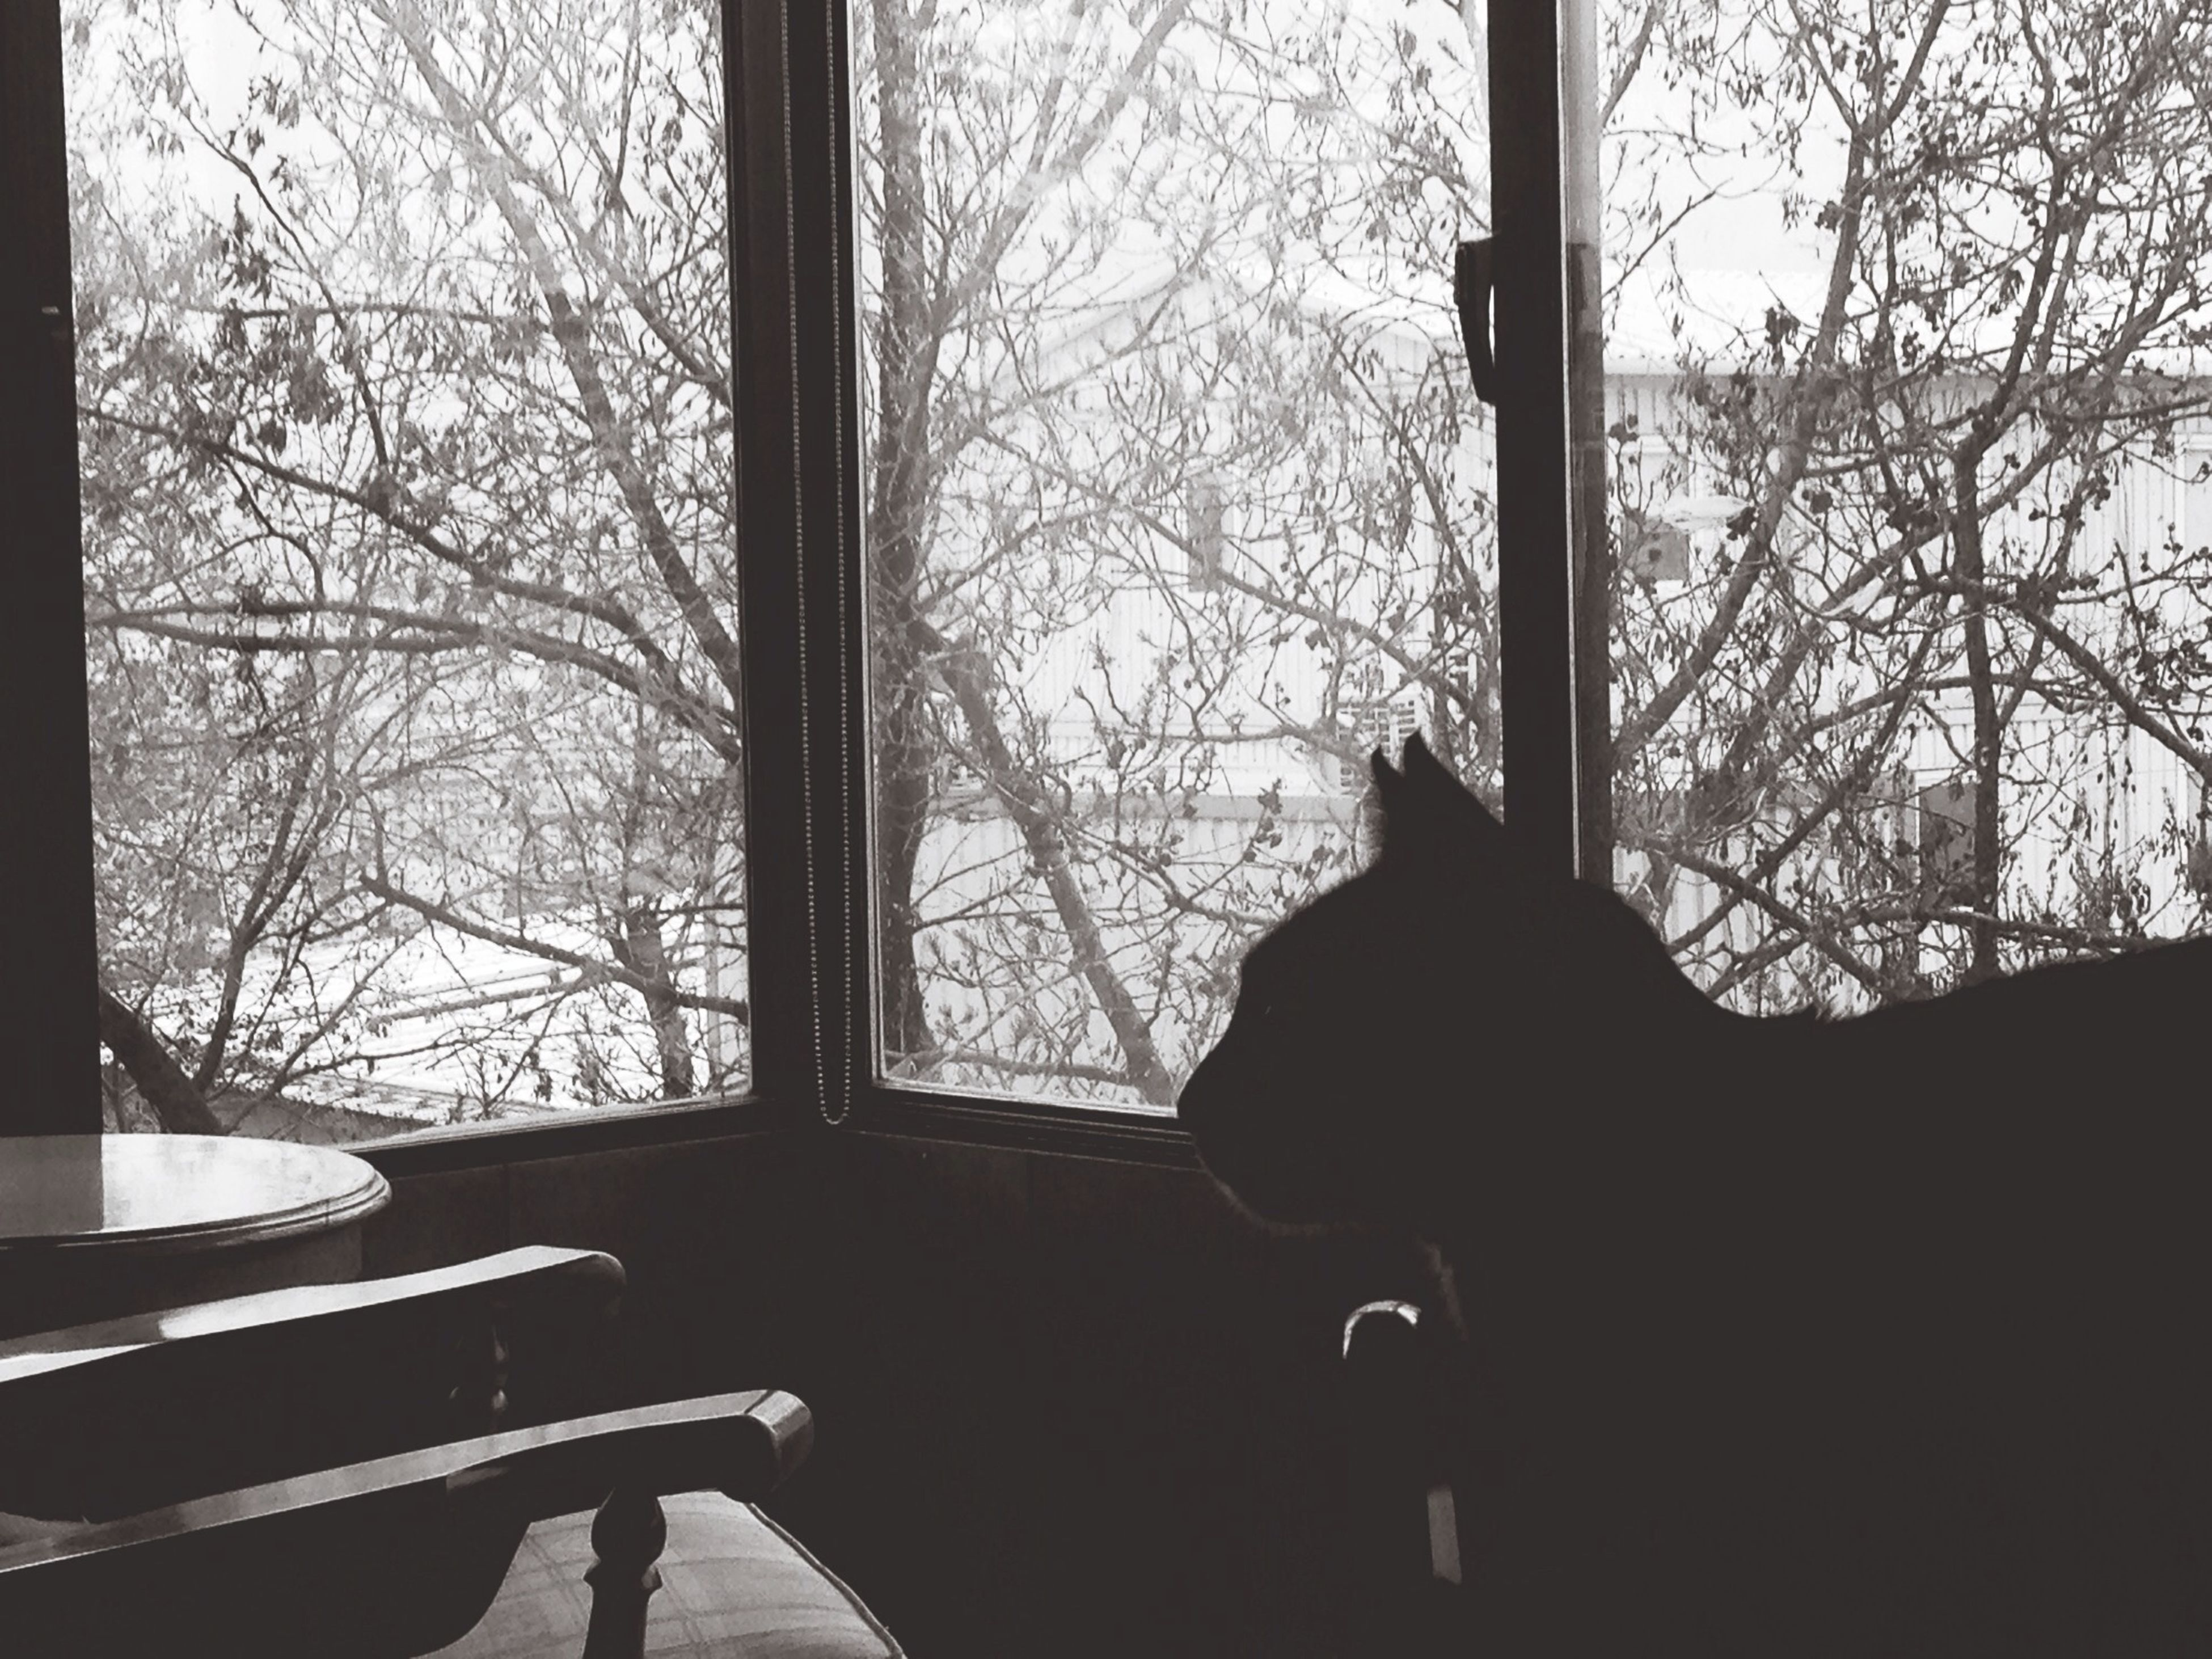 indoors, window, pets, domestic animals, one animal, animal themes, mammal, domestic cat, home interior, cat, glass - material, sitting, looking through window, transparent, tree, curtain, relaxation, silhouette, window sill, feline